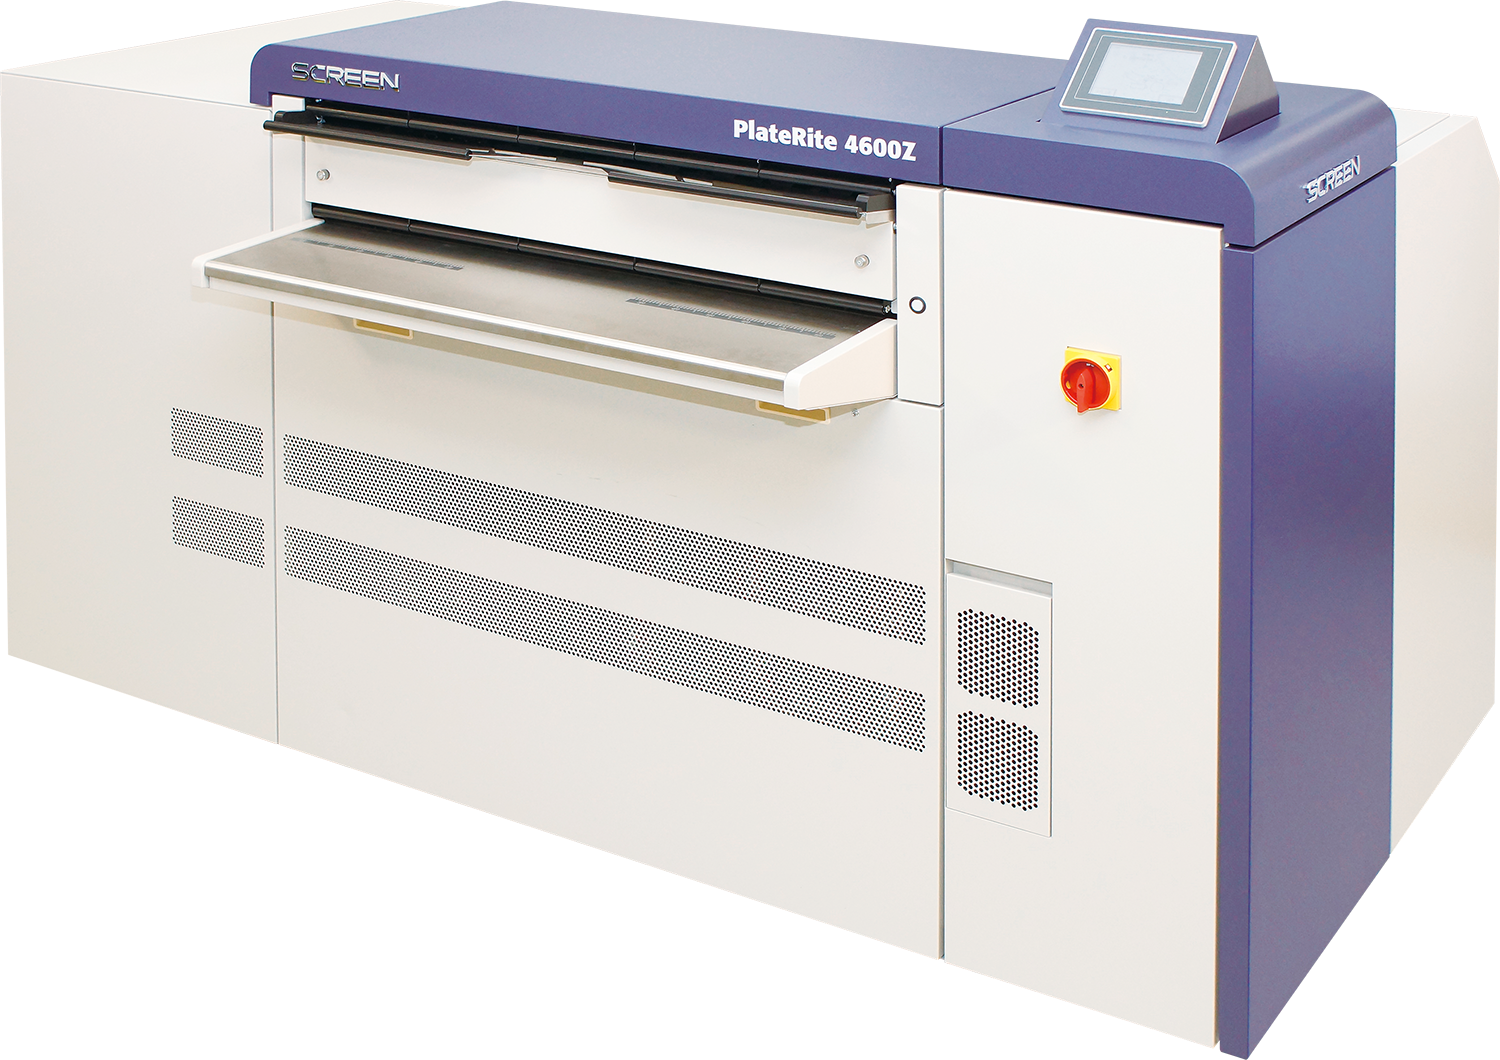 Image of PlateRite 4600 Series